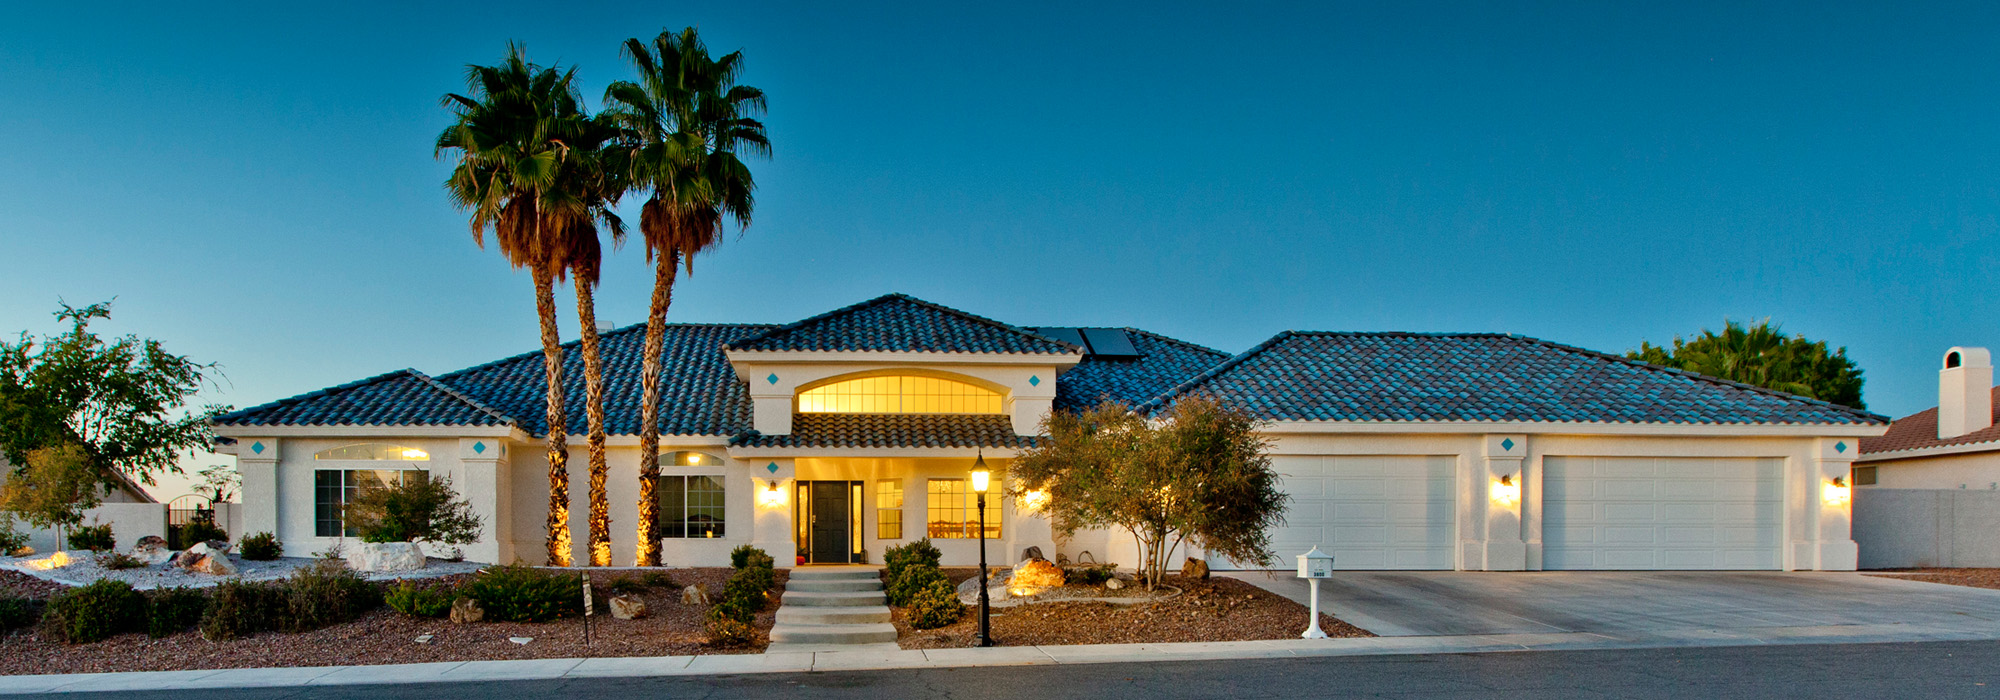 Pahrump Classic Realty